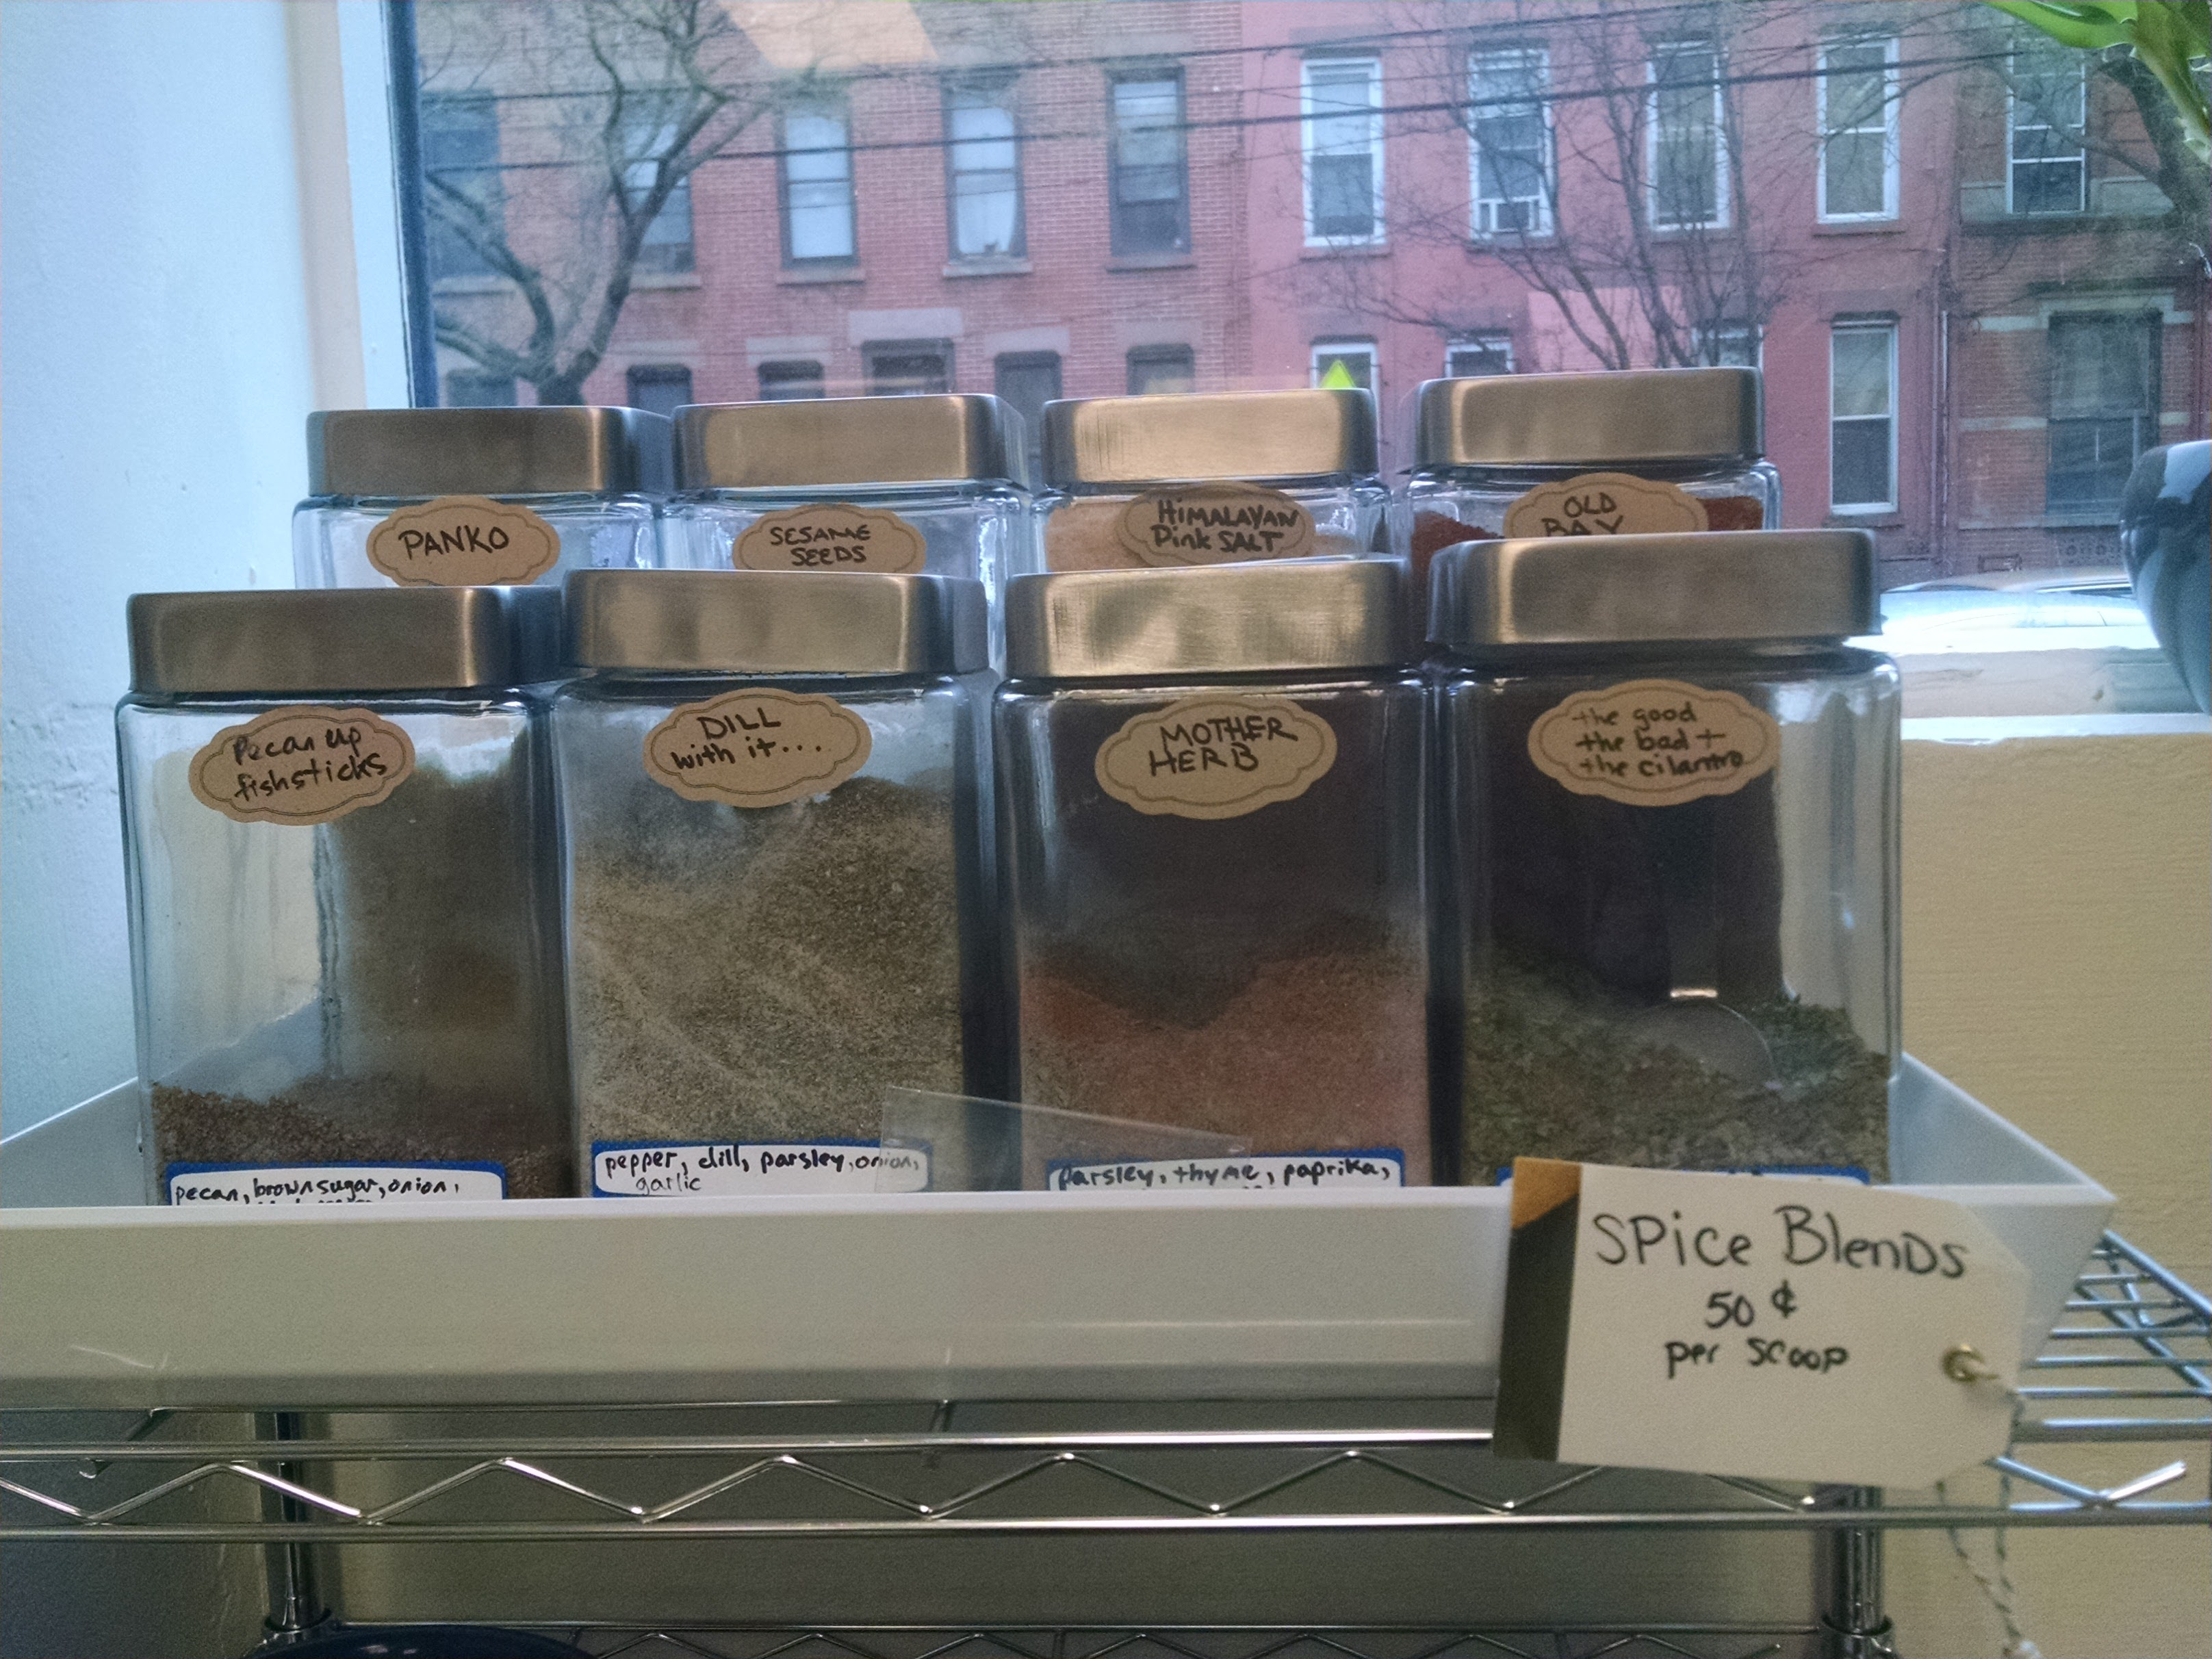 JC Fish Stand spice blends